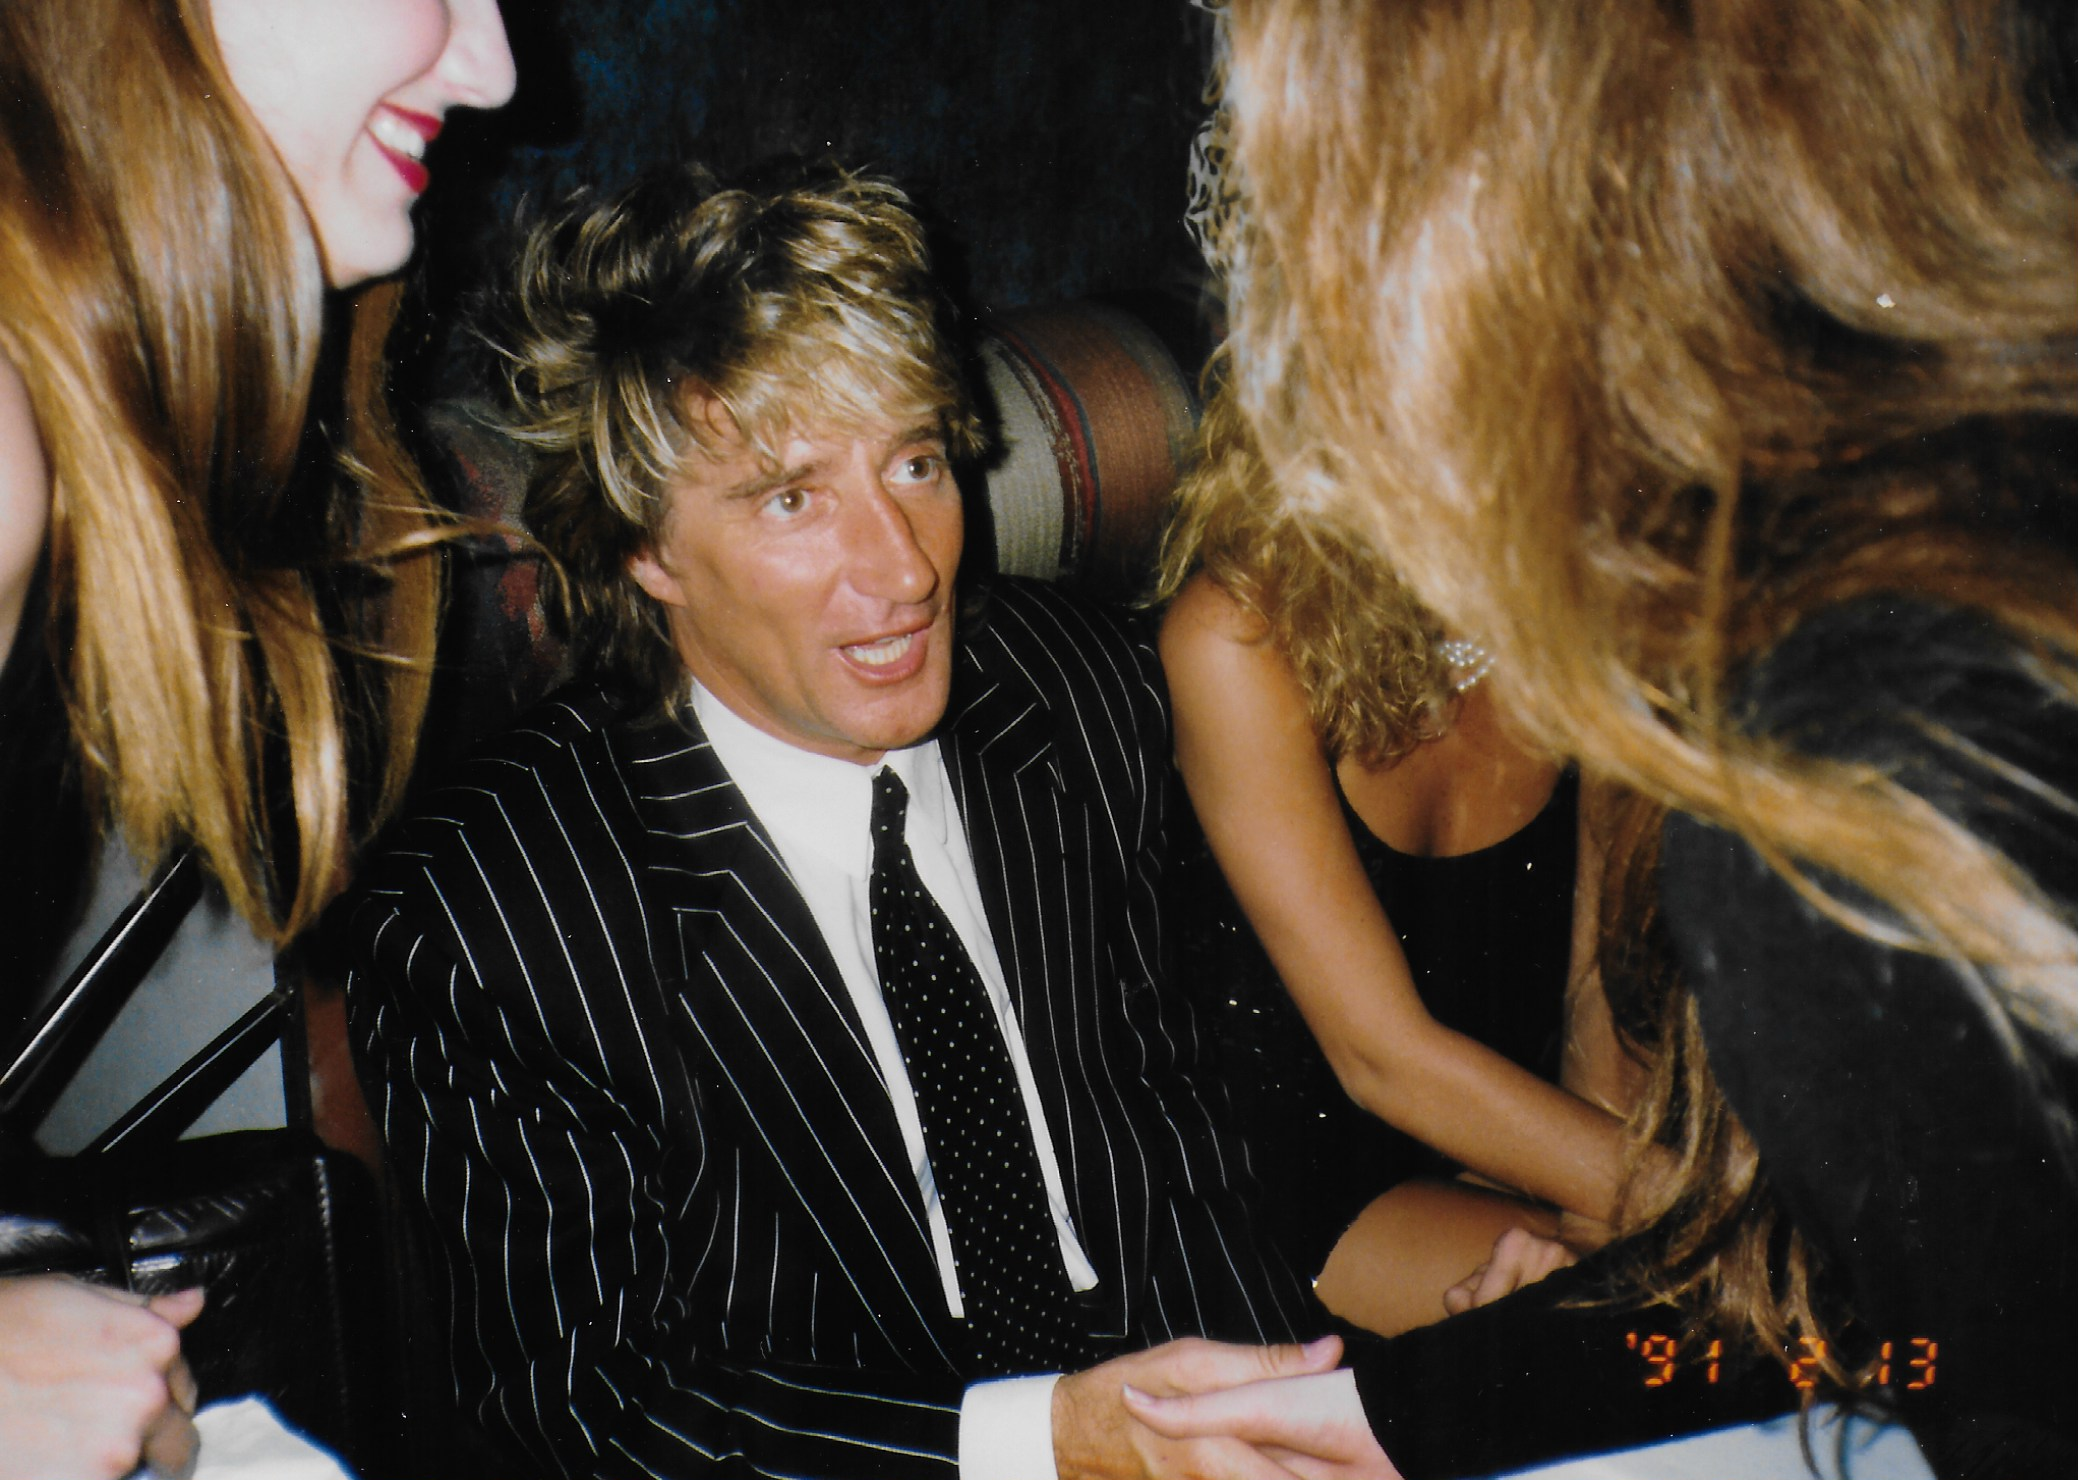 Stephen Duncan and Rod Stewart